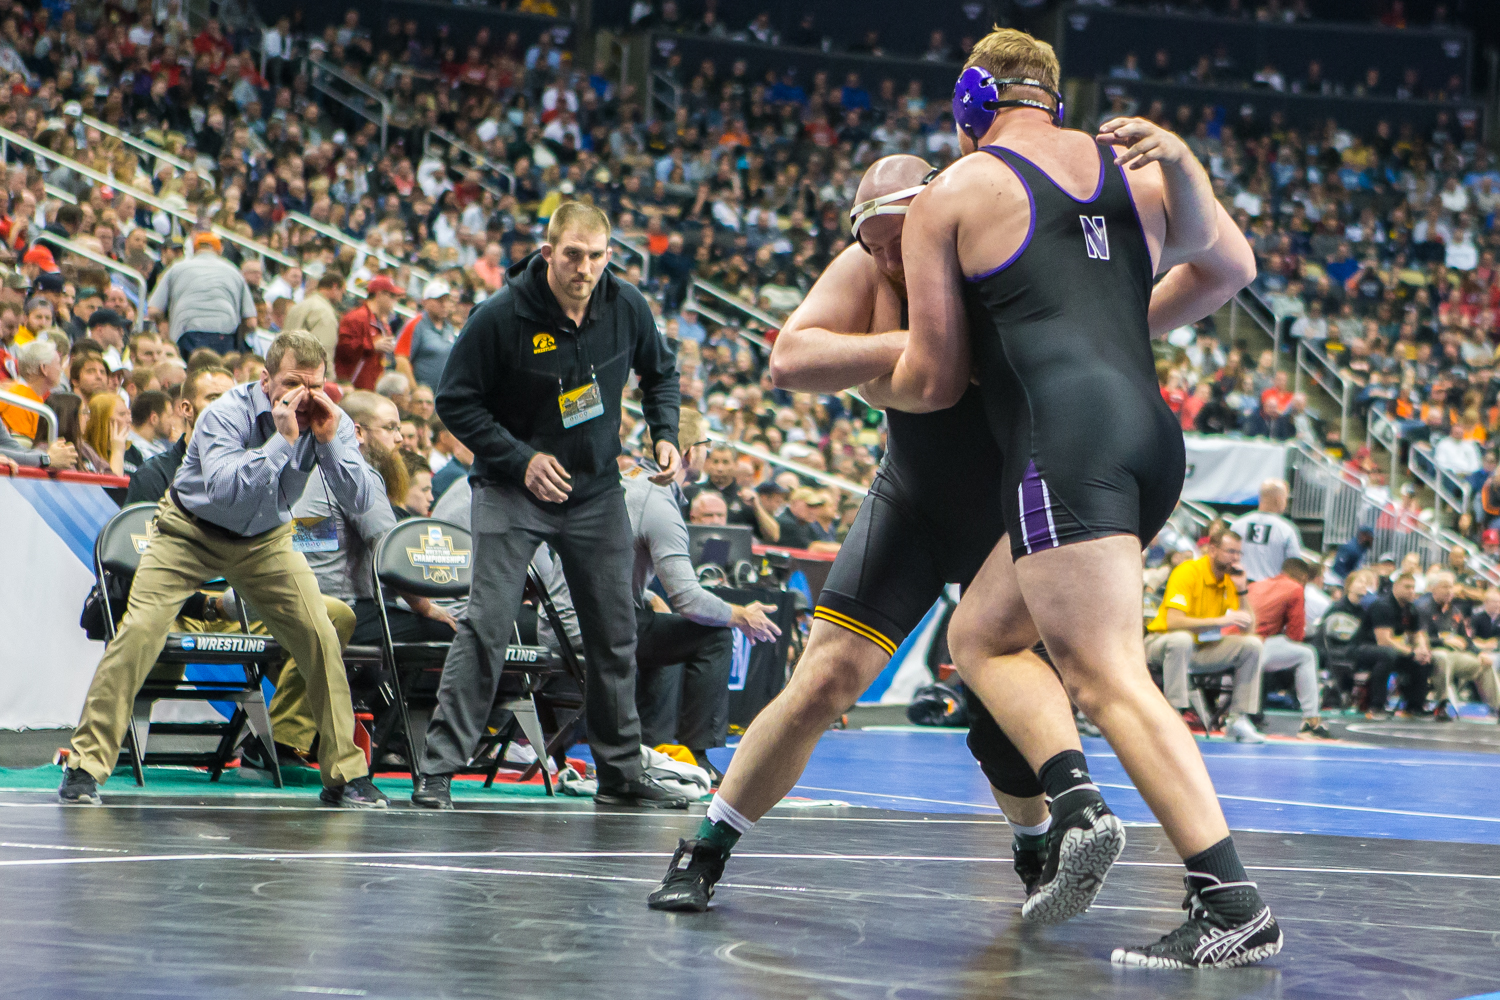 Iowa%E2%80%99s+285-pound+Sam+Stoll+wrestles+Northwestern%E2%80%99s+Conan+Jennings+during+the+second+session+of+the+2019+NCAA+D1+Wrestling+Championships+at+PPG+Paints+Arena+in+Pittsburgh%2C+PA+on+Thursday%2C+March+21%2C+2019.+Stoll+won+by+decision%2C+1-0.